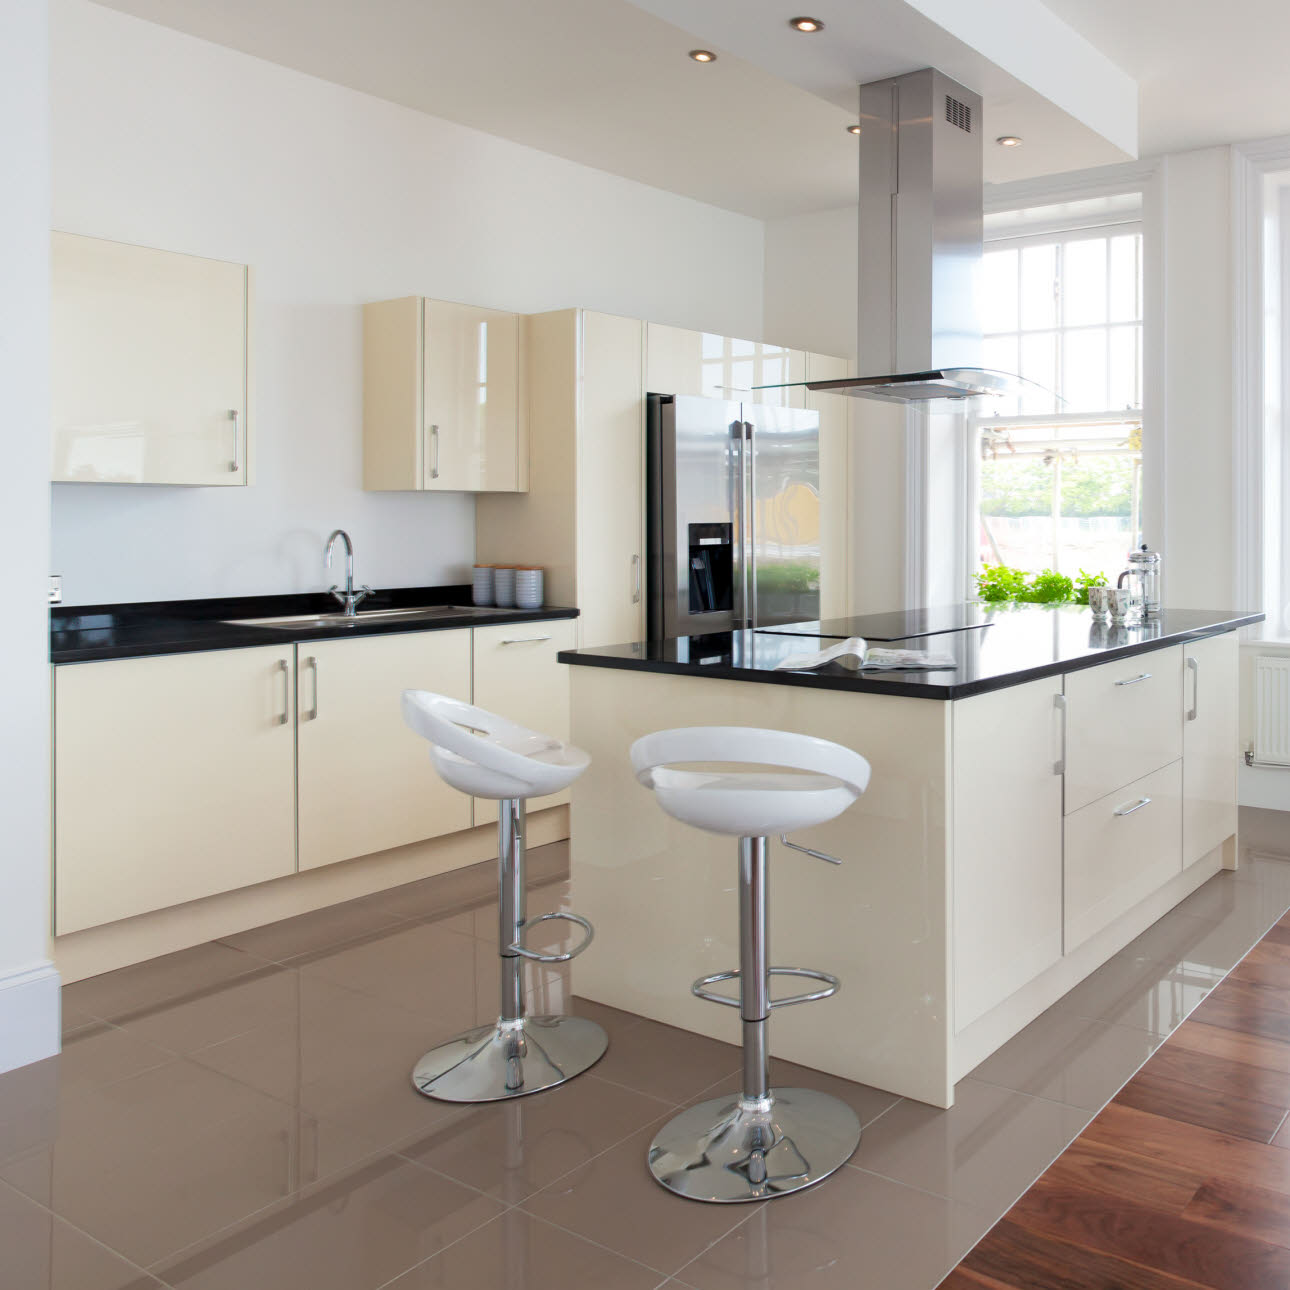 Magnet Eversley Park kitchen installed with island, tiled floor